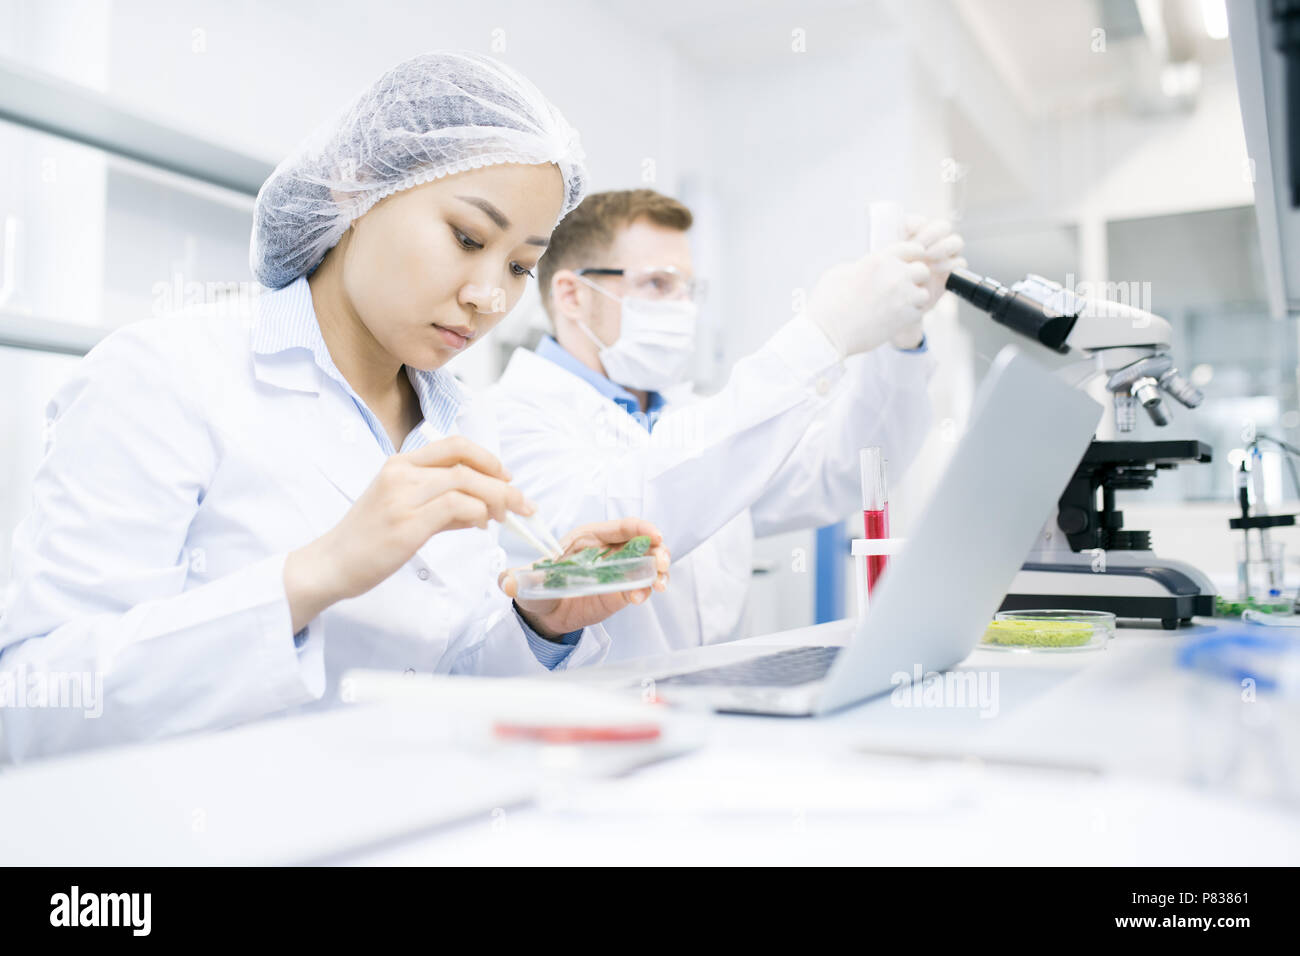 Modern Scientists Doing Research in Laboratory - Stock Image